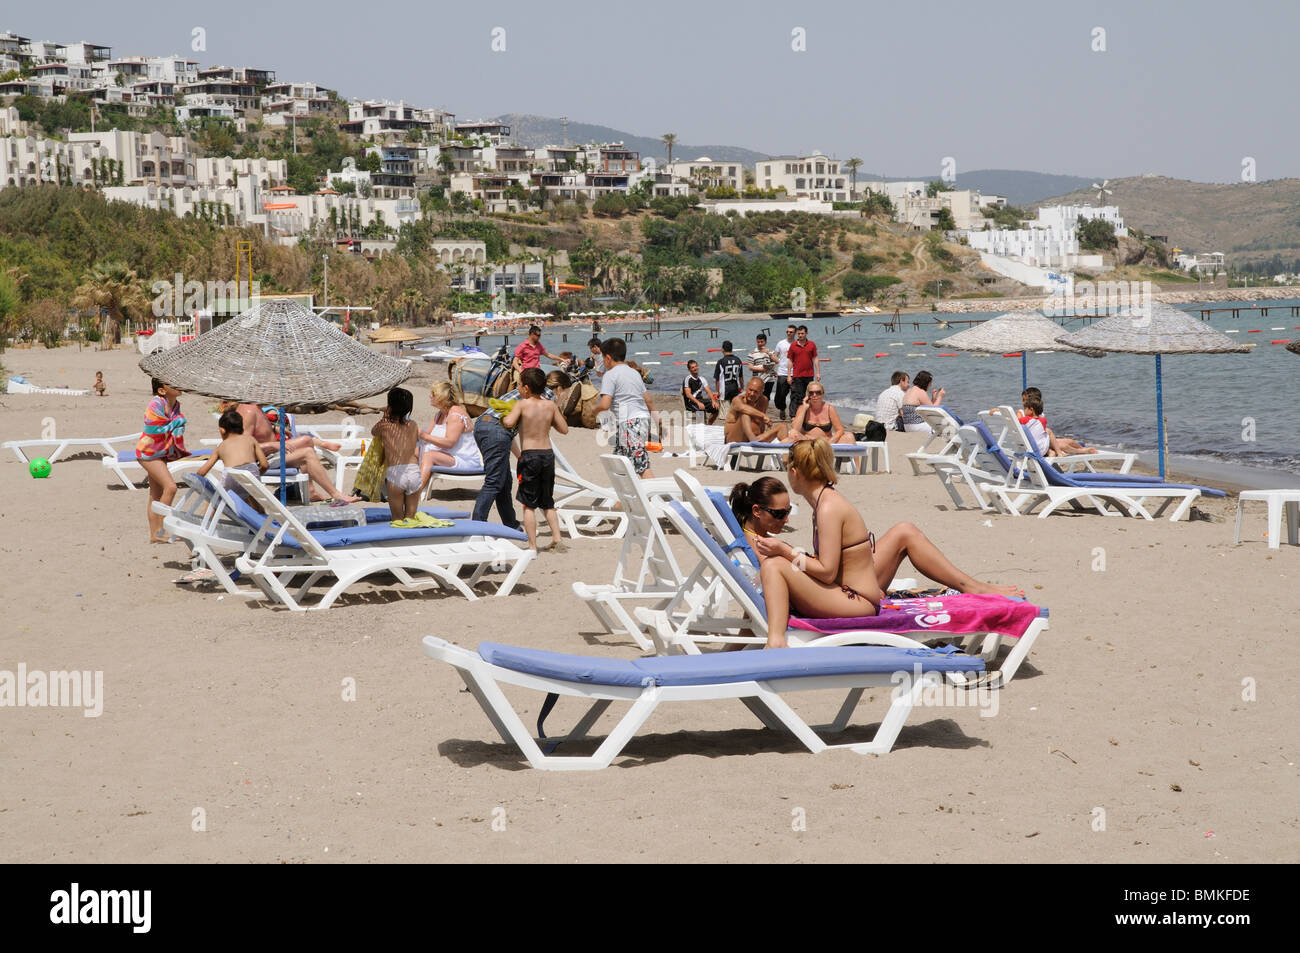 Holidaymakers on the beach at Camel Beach a seaside resort close to Bodrum south west Aegean Turkey Asia Minor - Stock Image